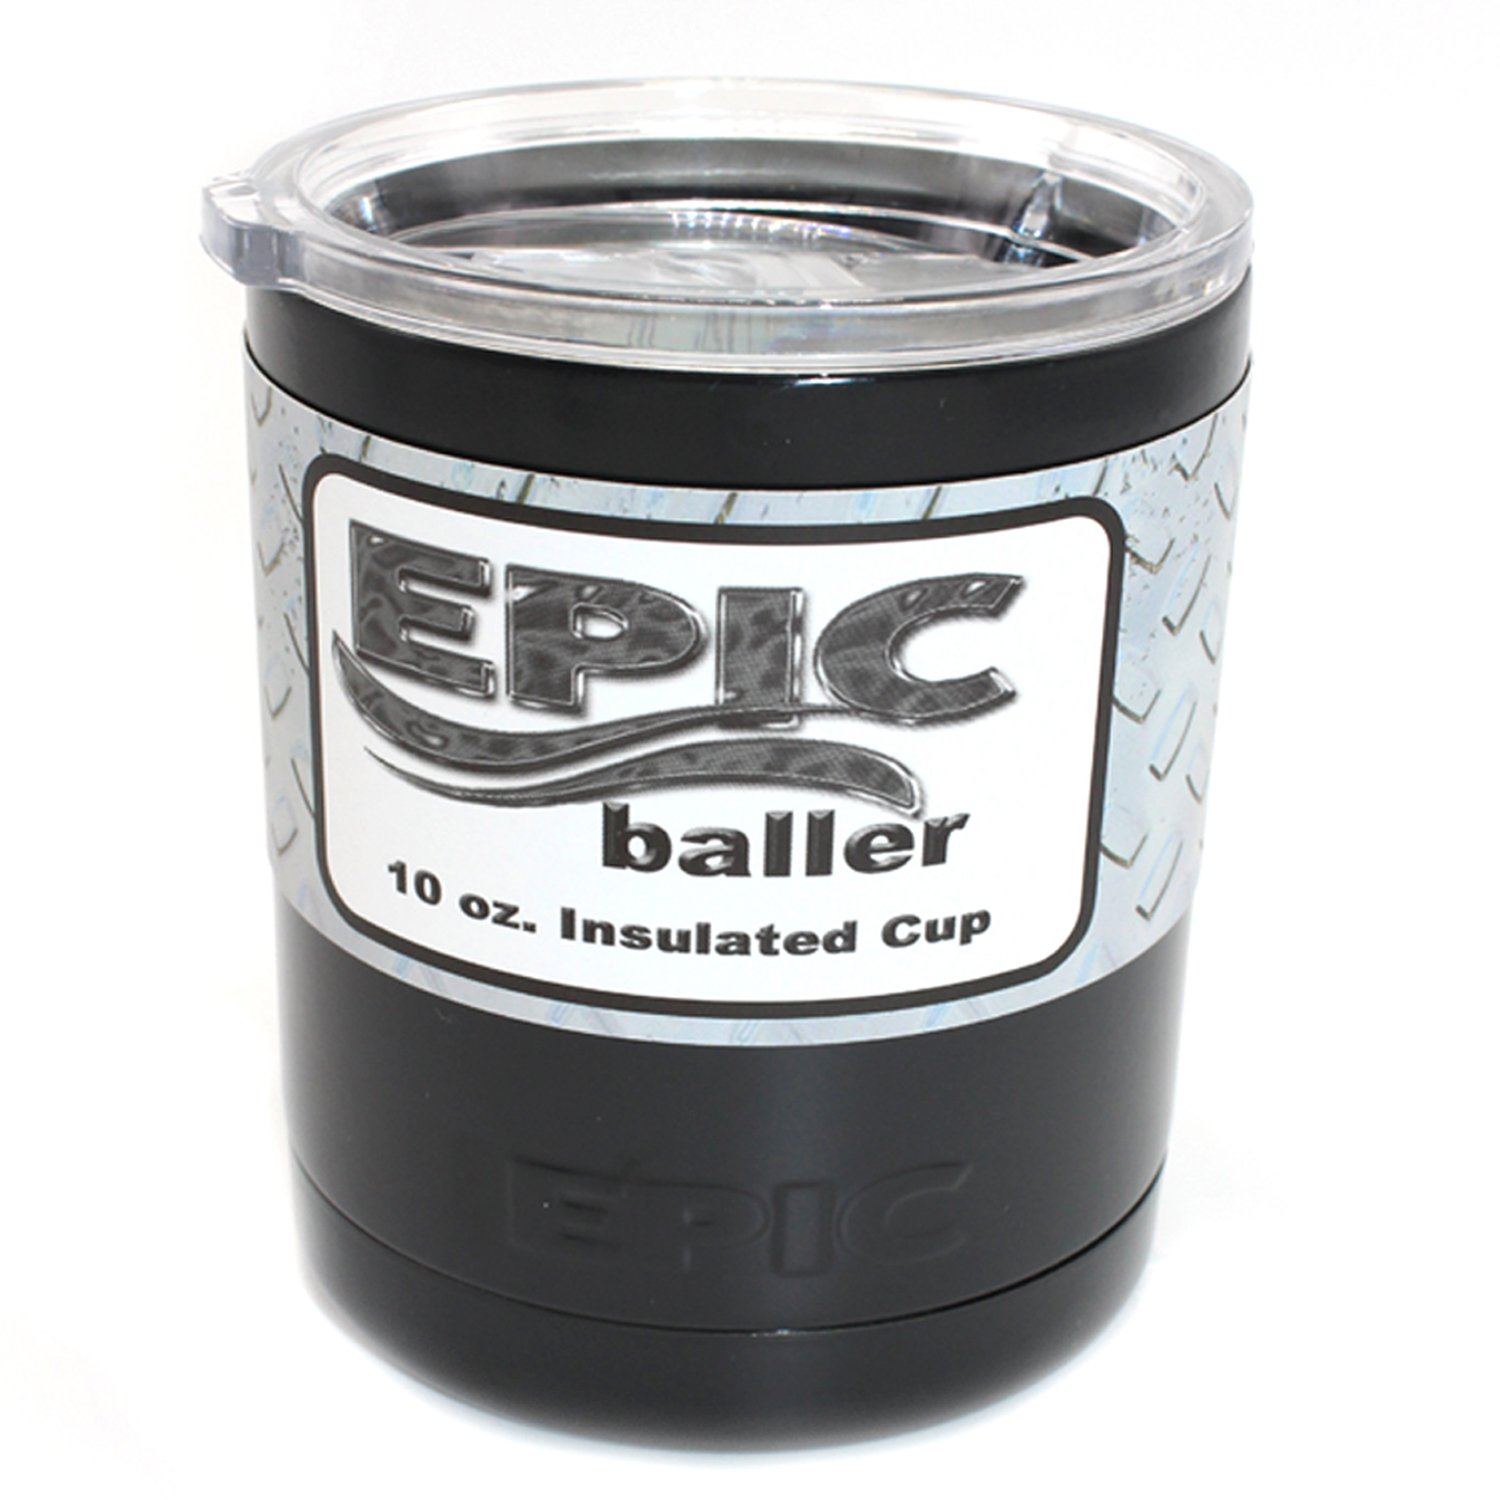 EPIC Stainless Steel Vacuum Insulated Travel Tumbler, 10 oz, Black